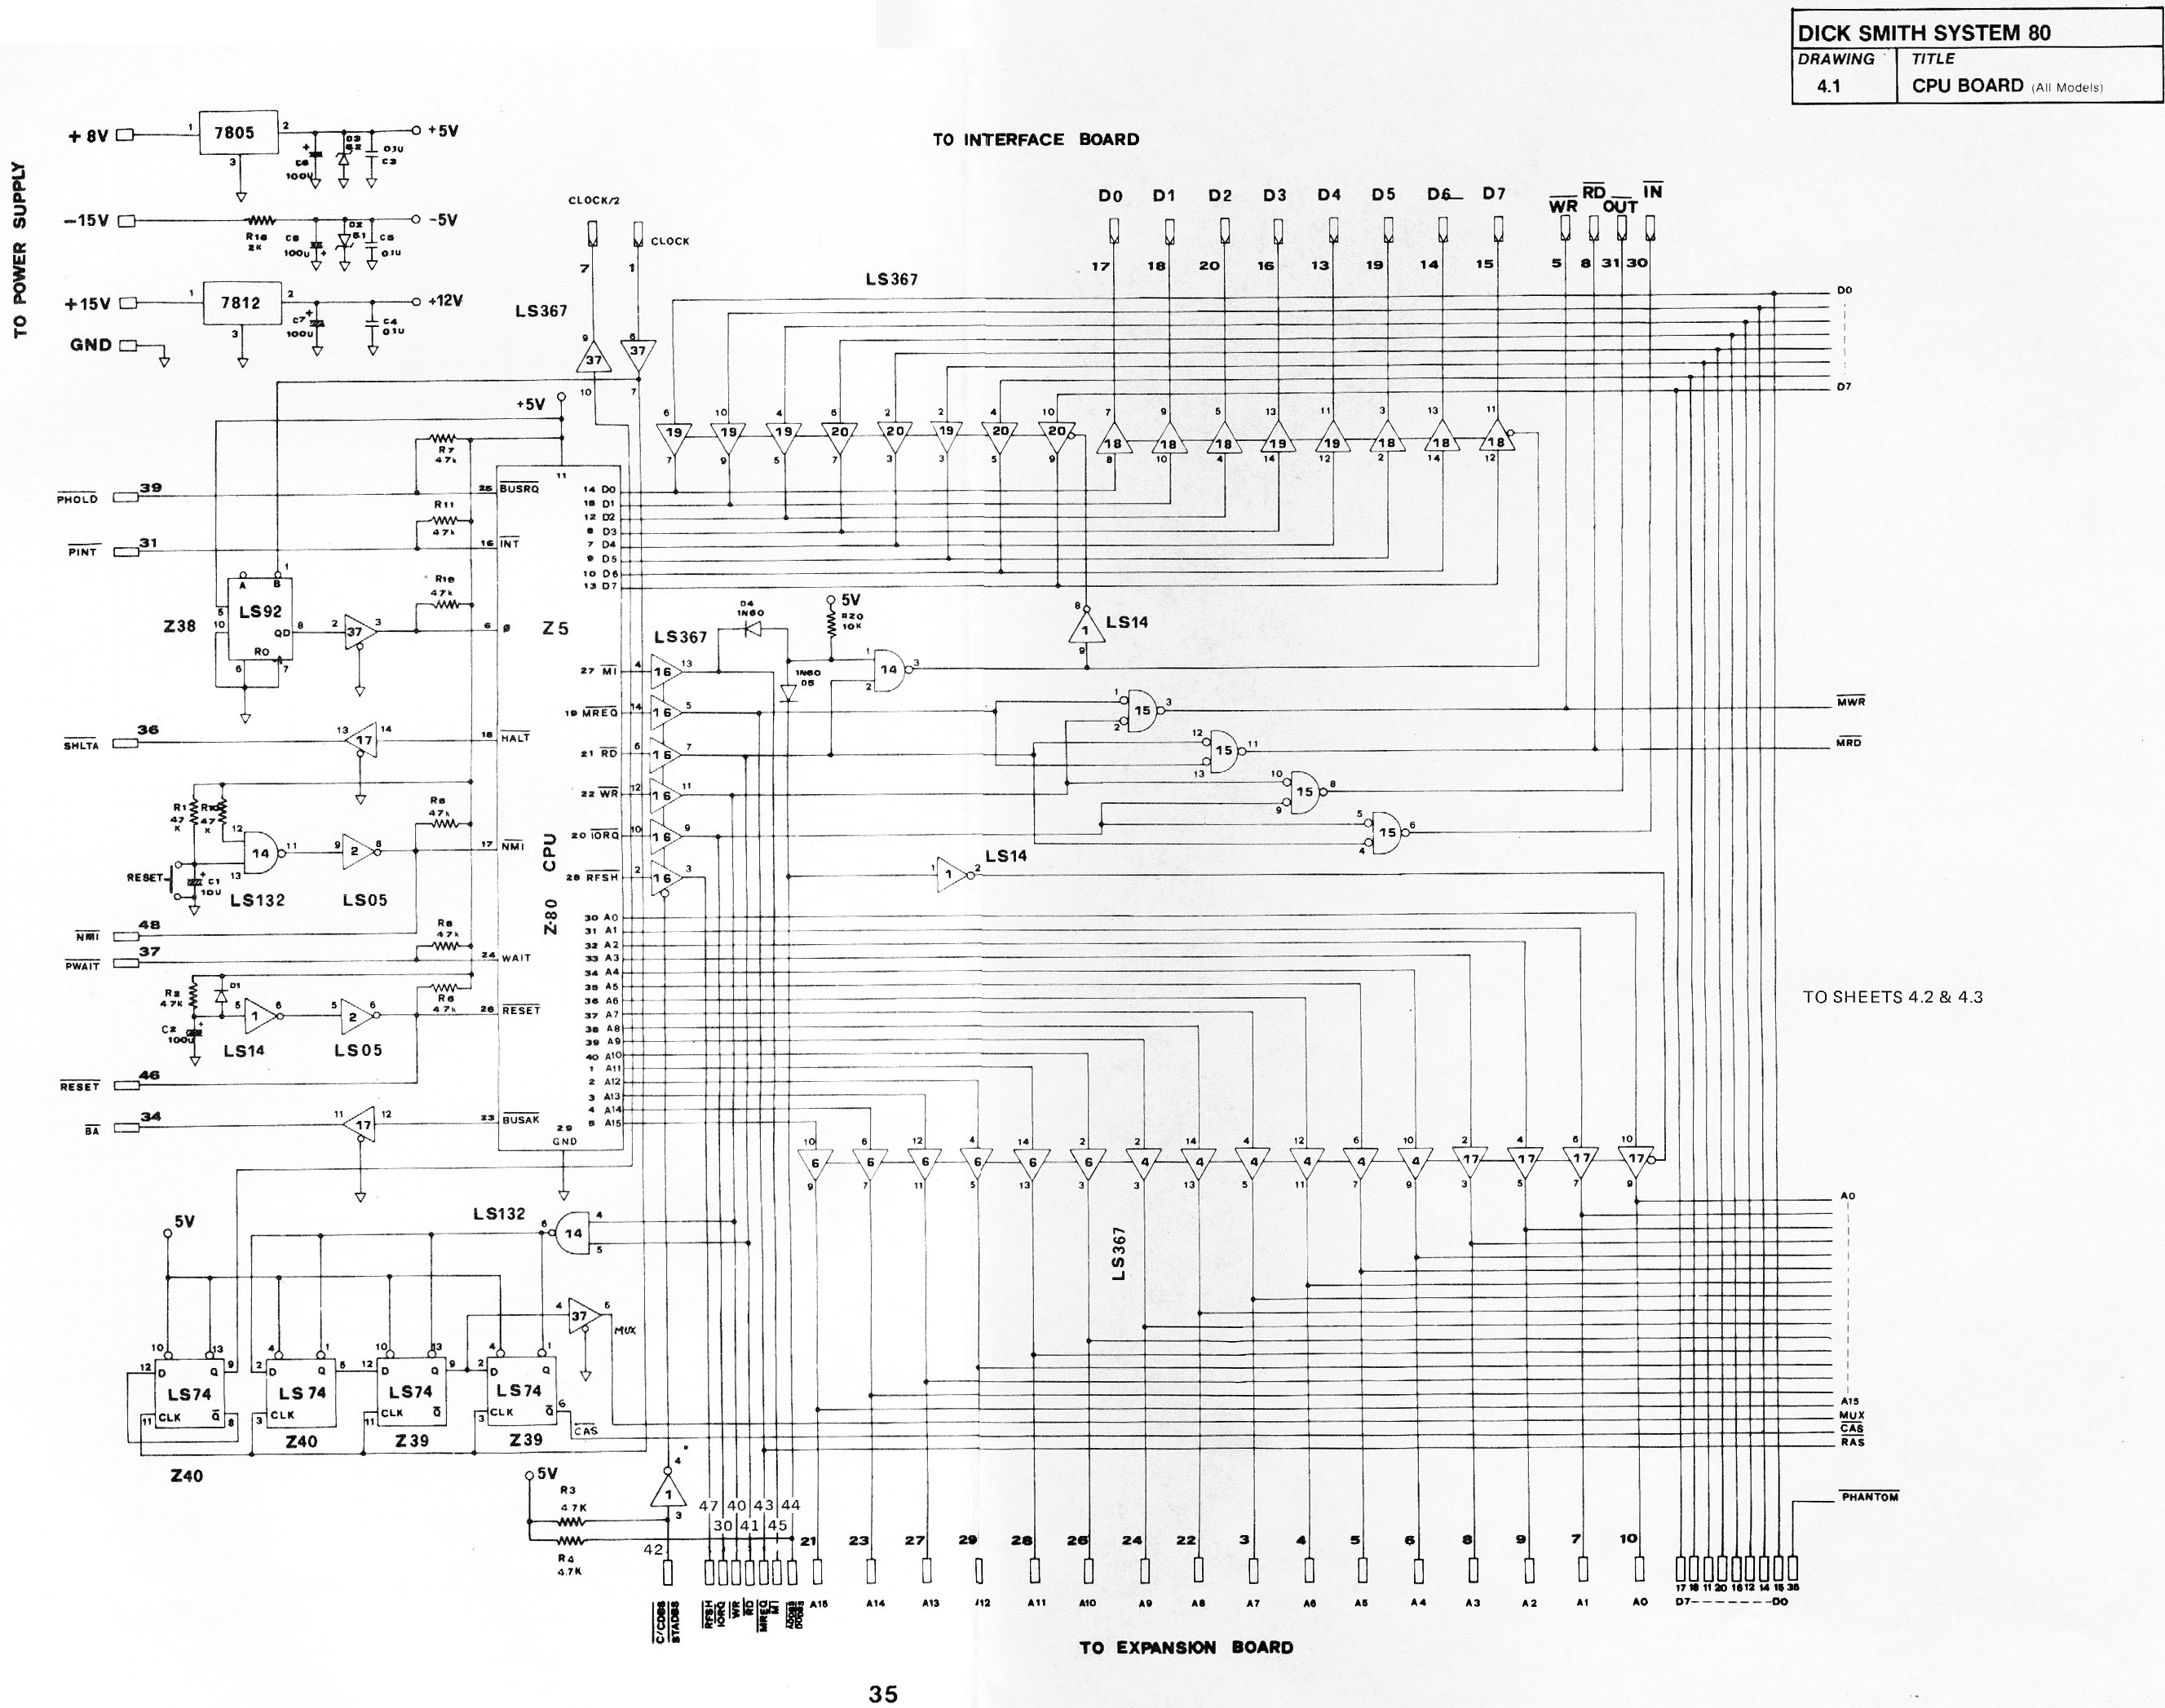 system 80 technical manual